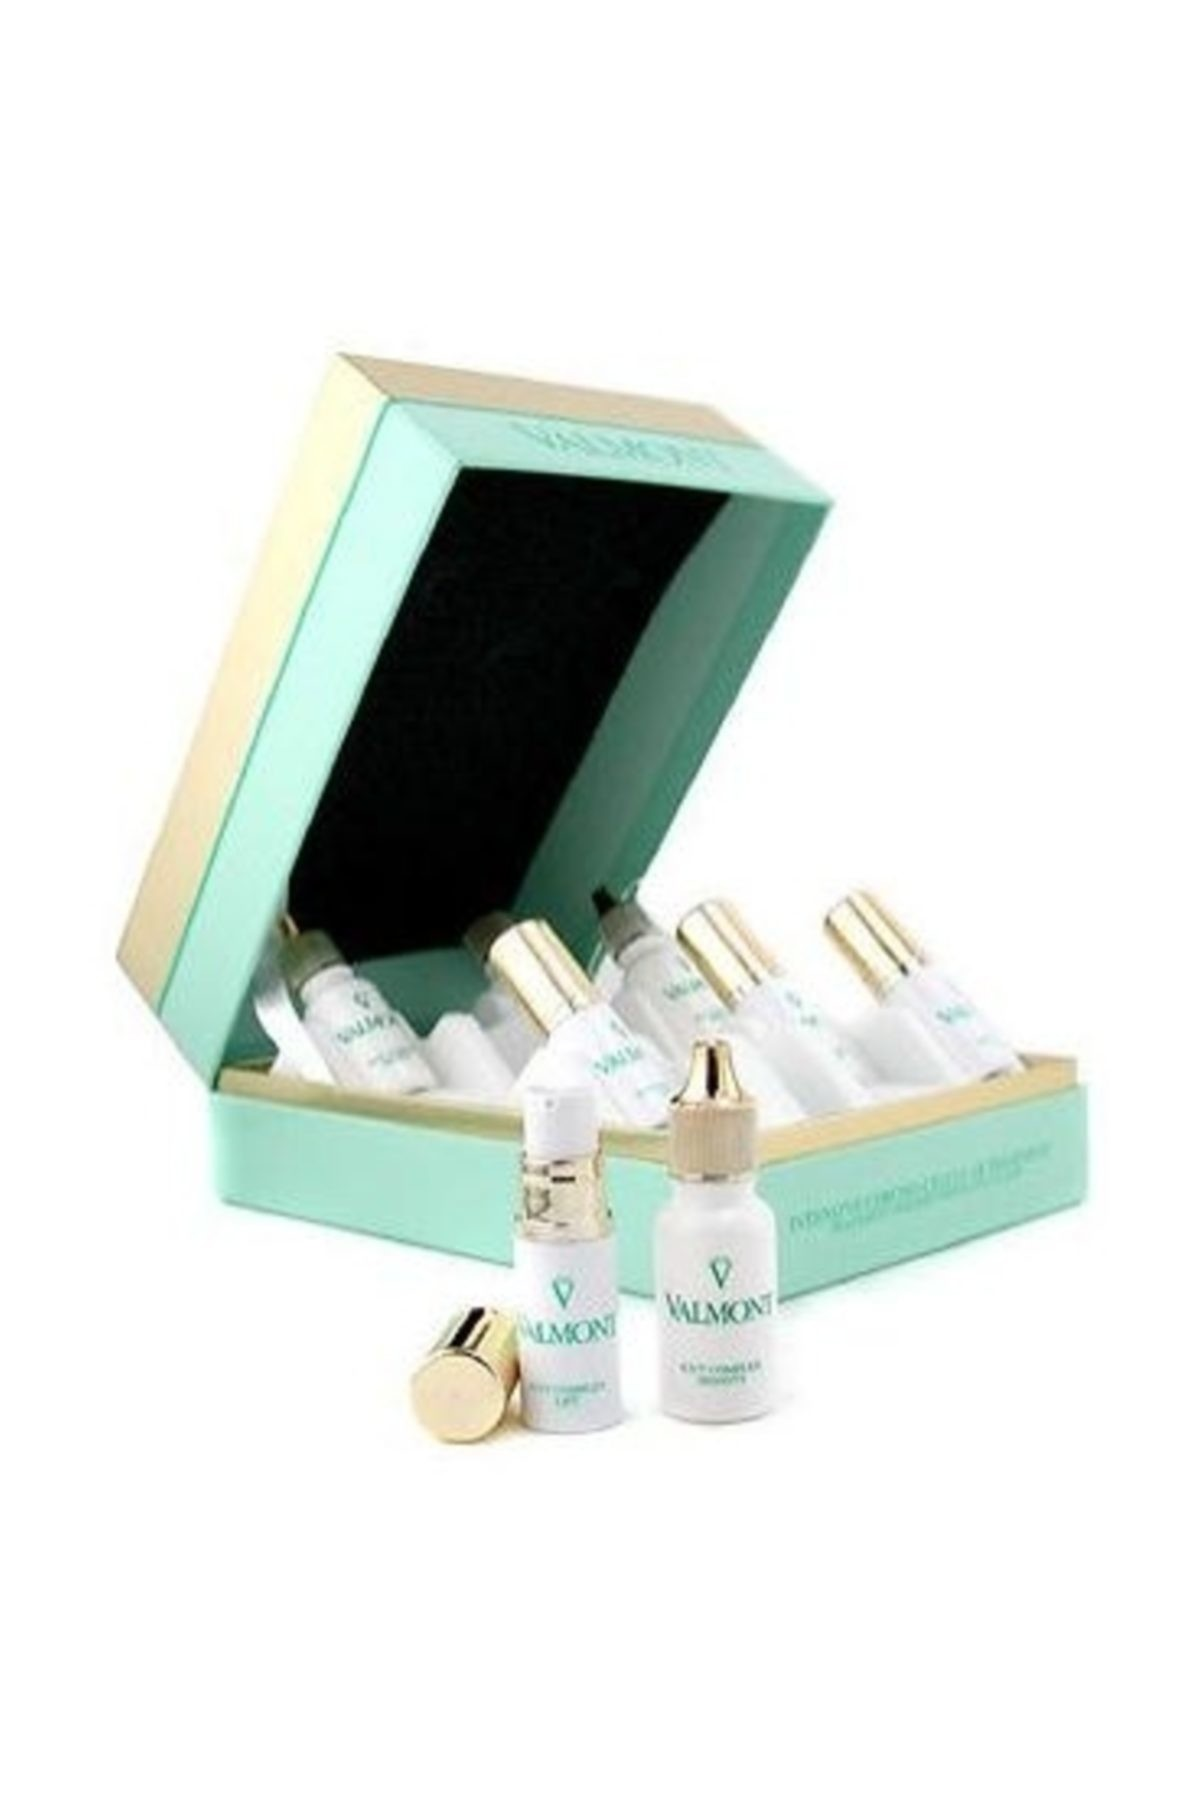 Valmont Intensive Chrono-Cellular Treatment: 4x Complex Lift 5ml + 8x Complex Density 4ml 12pcs